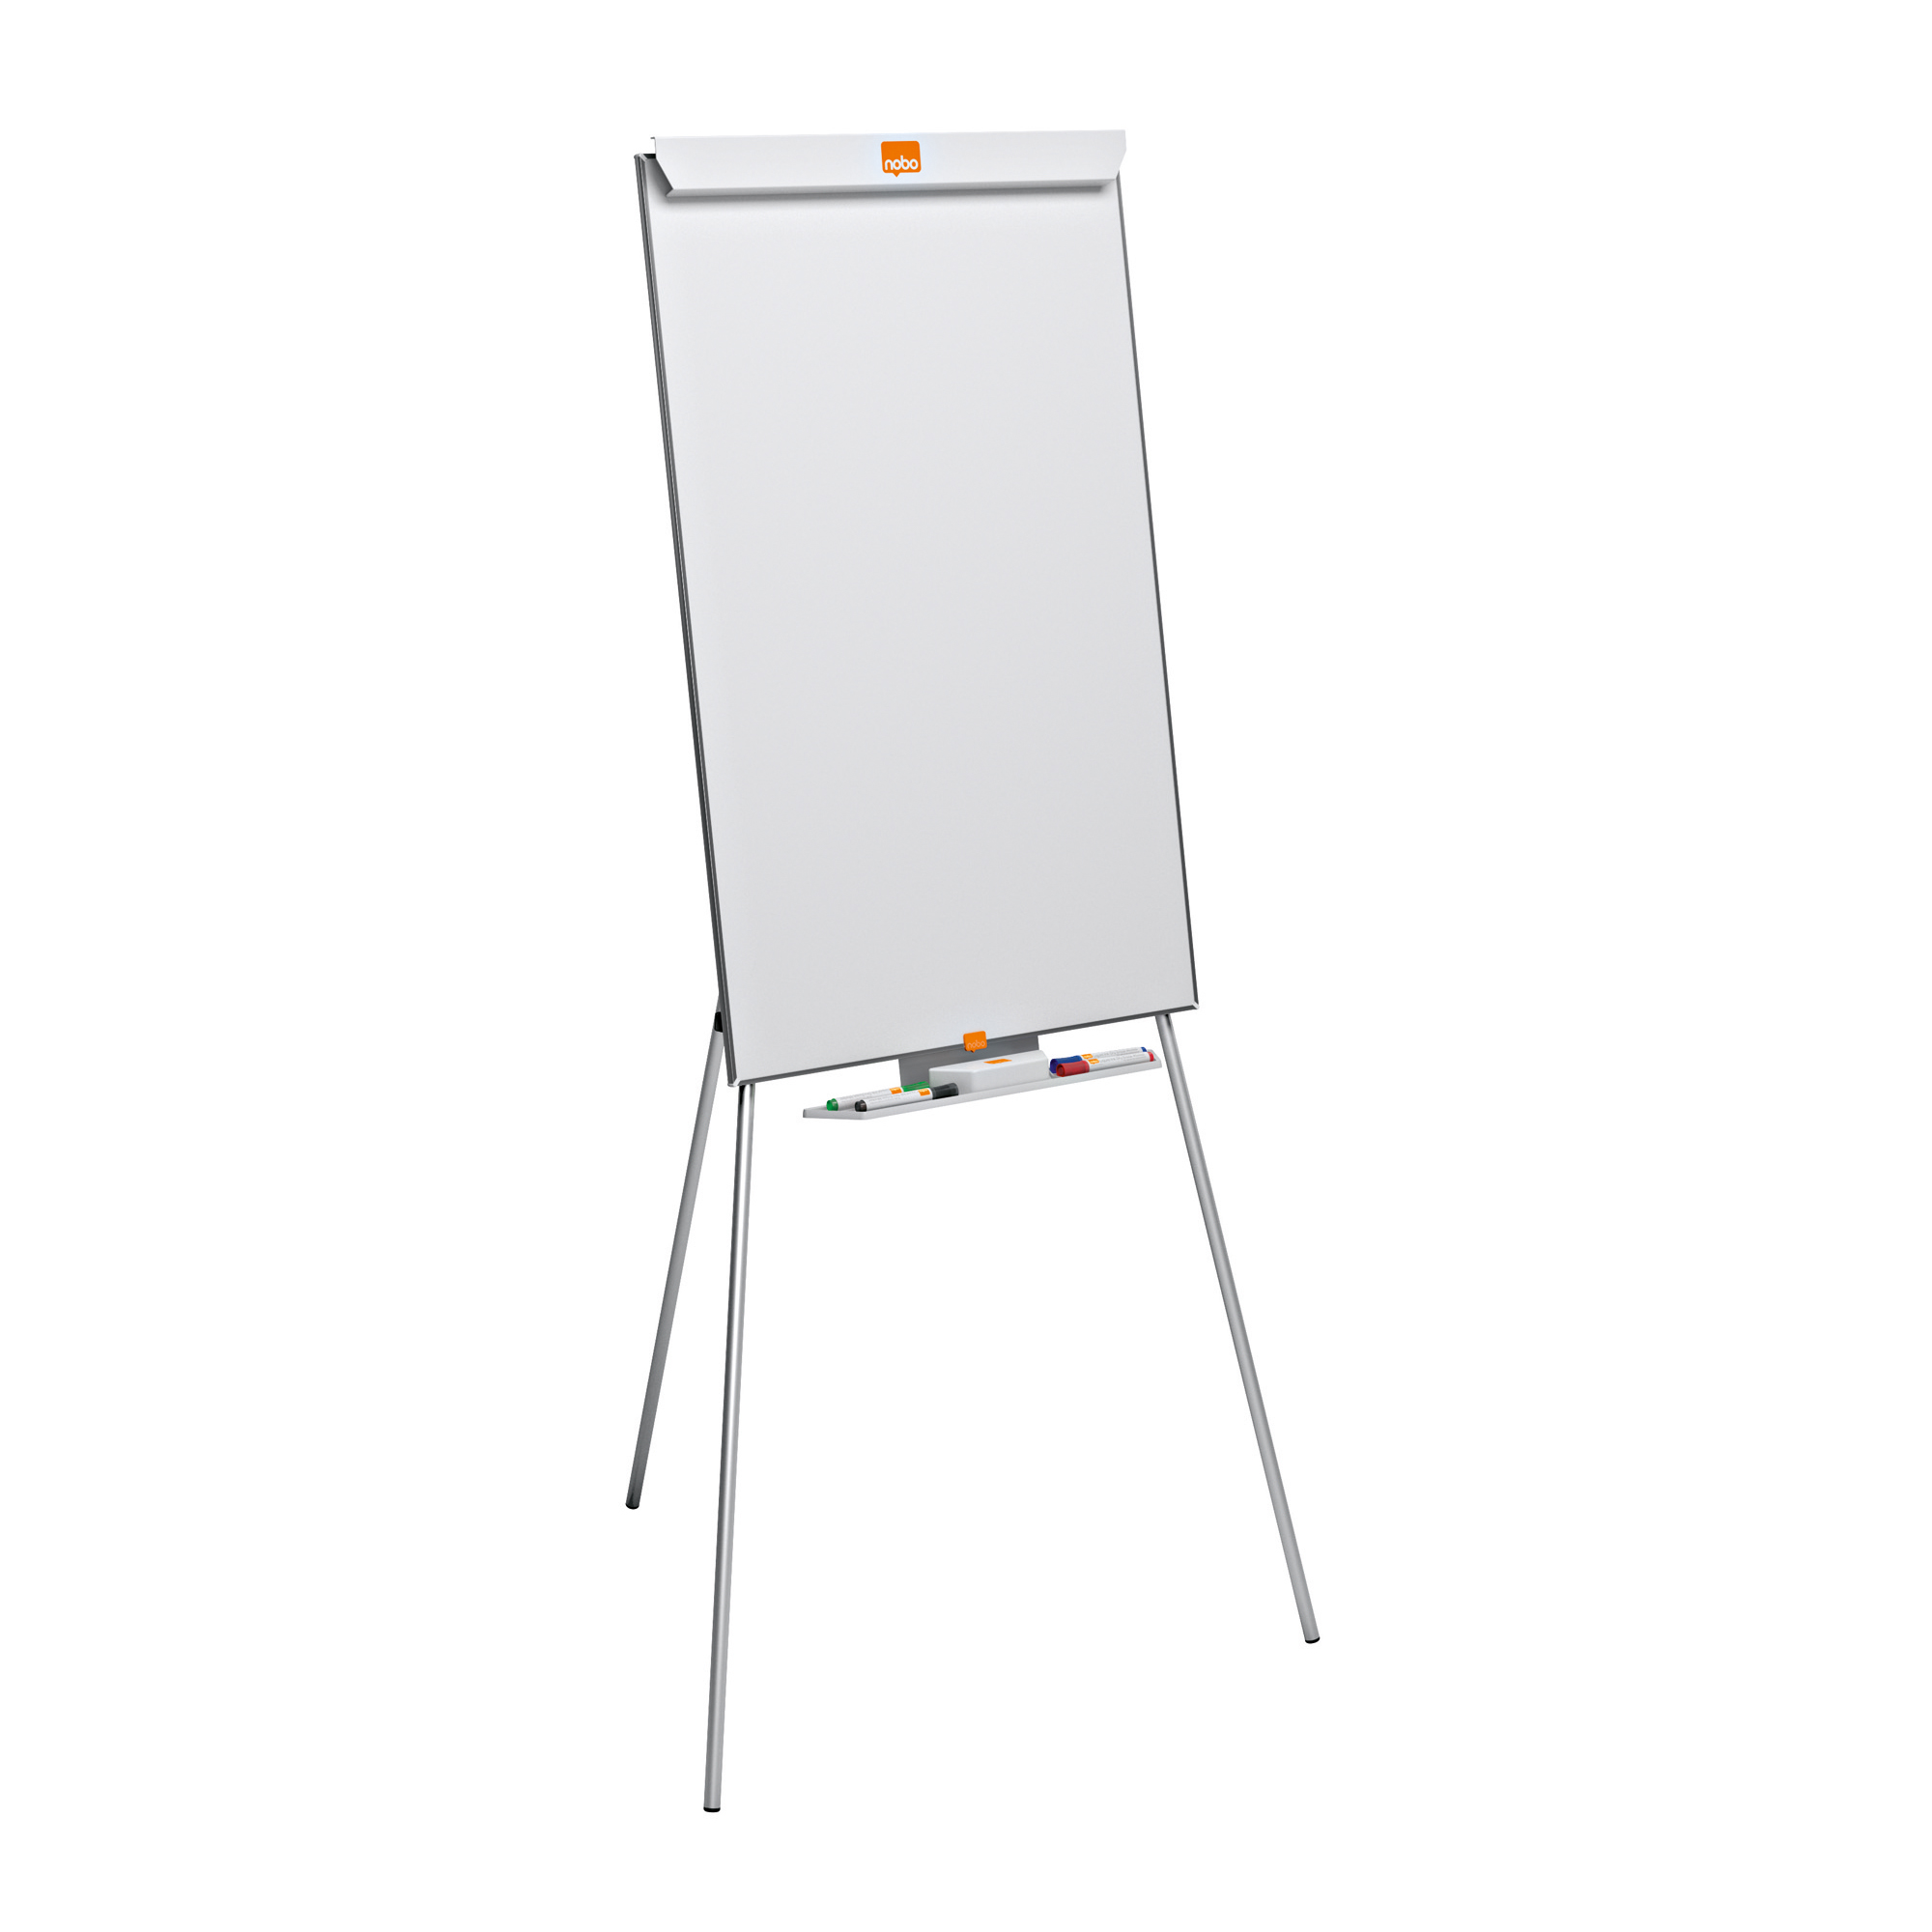 Nobo Basic Tripod Easel Height-adjustable Melamine Surface Non-magnetic W904xH582mm White Ref 1905241